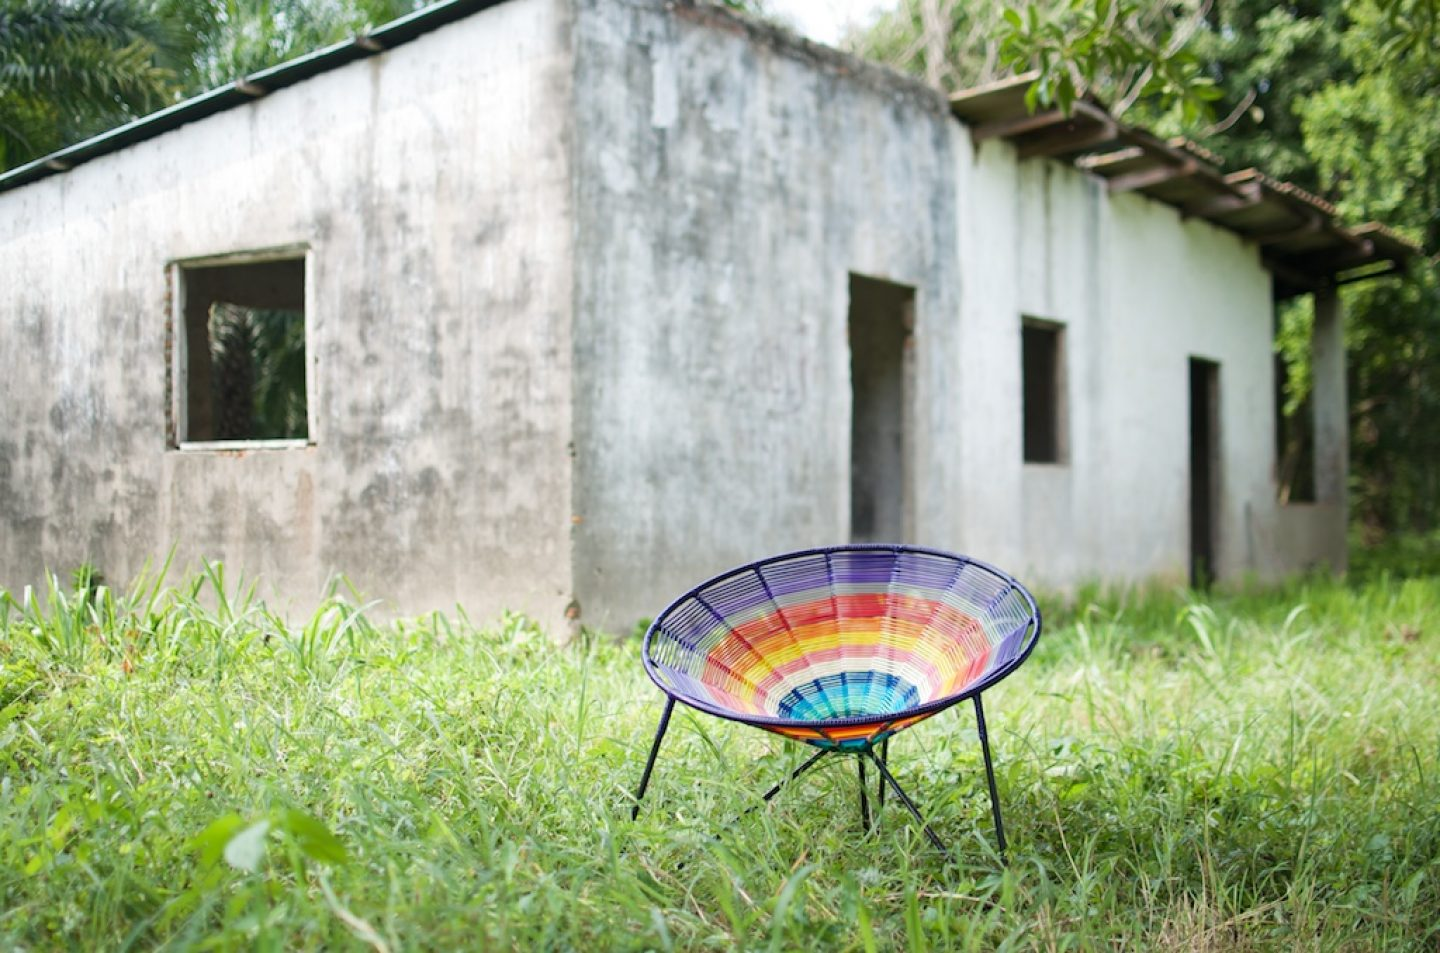 """Only Colombian ingenuity could conceive of of derivatives of palm leaves and banana crops as materials for the creation of seats and rocking chairs."" - Rafael Zúñiga, Creative Director of Tucurinca"